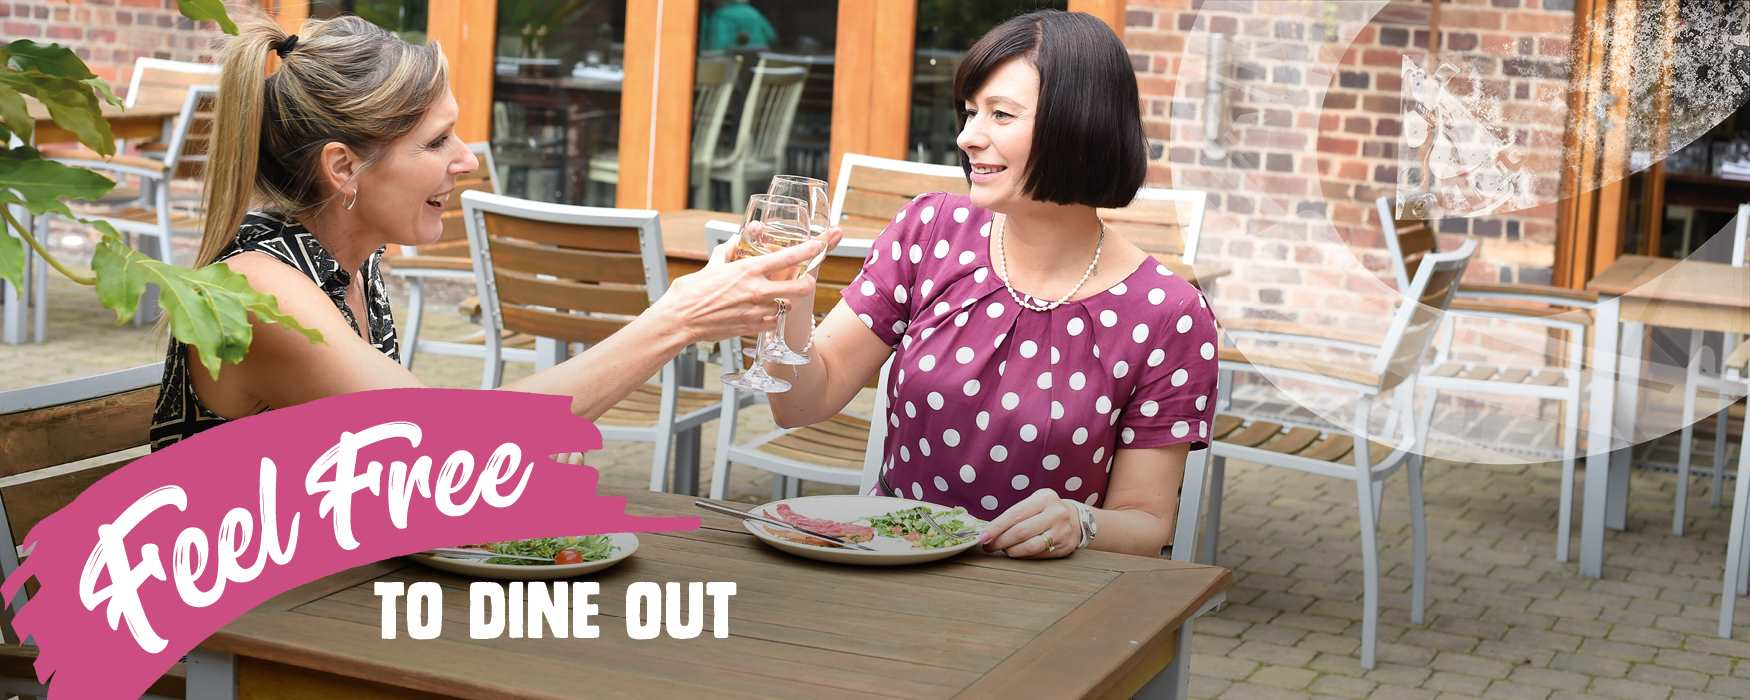 Feel Free to dine out in Staffordshire. Ladies having lunch outdoors at Weston Park's Granary restaurant.